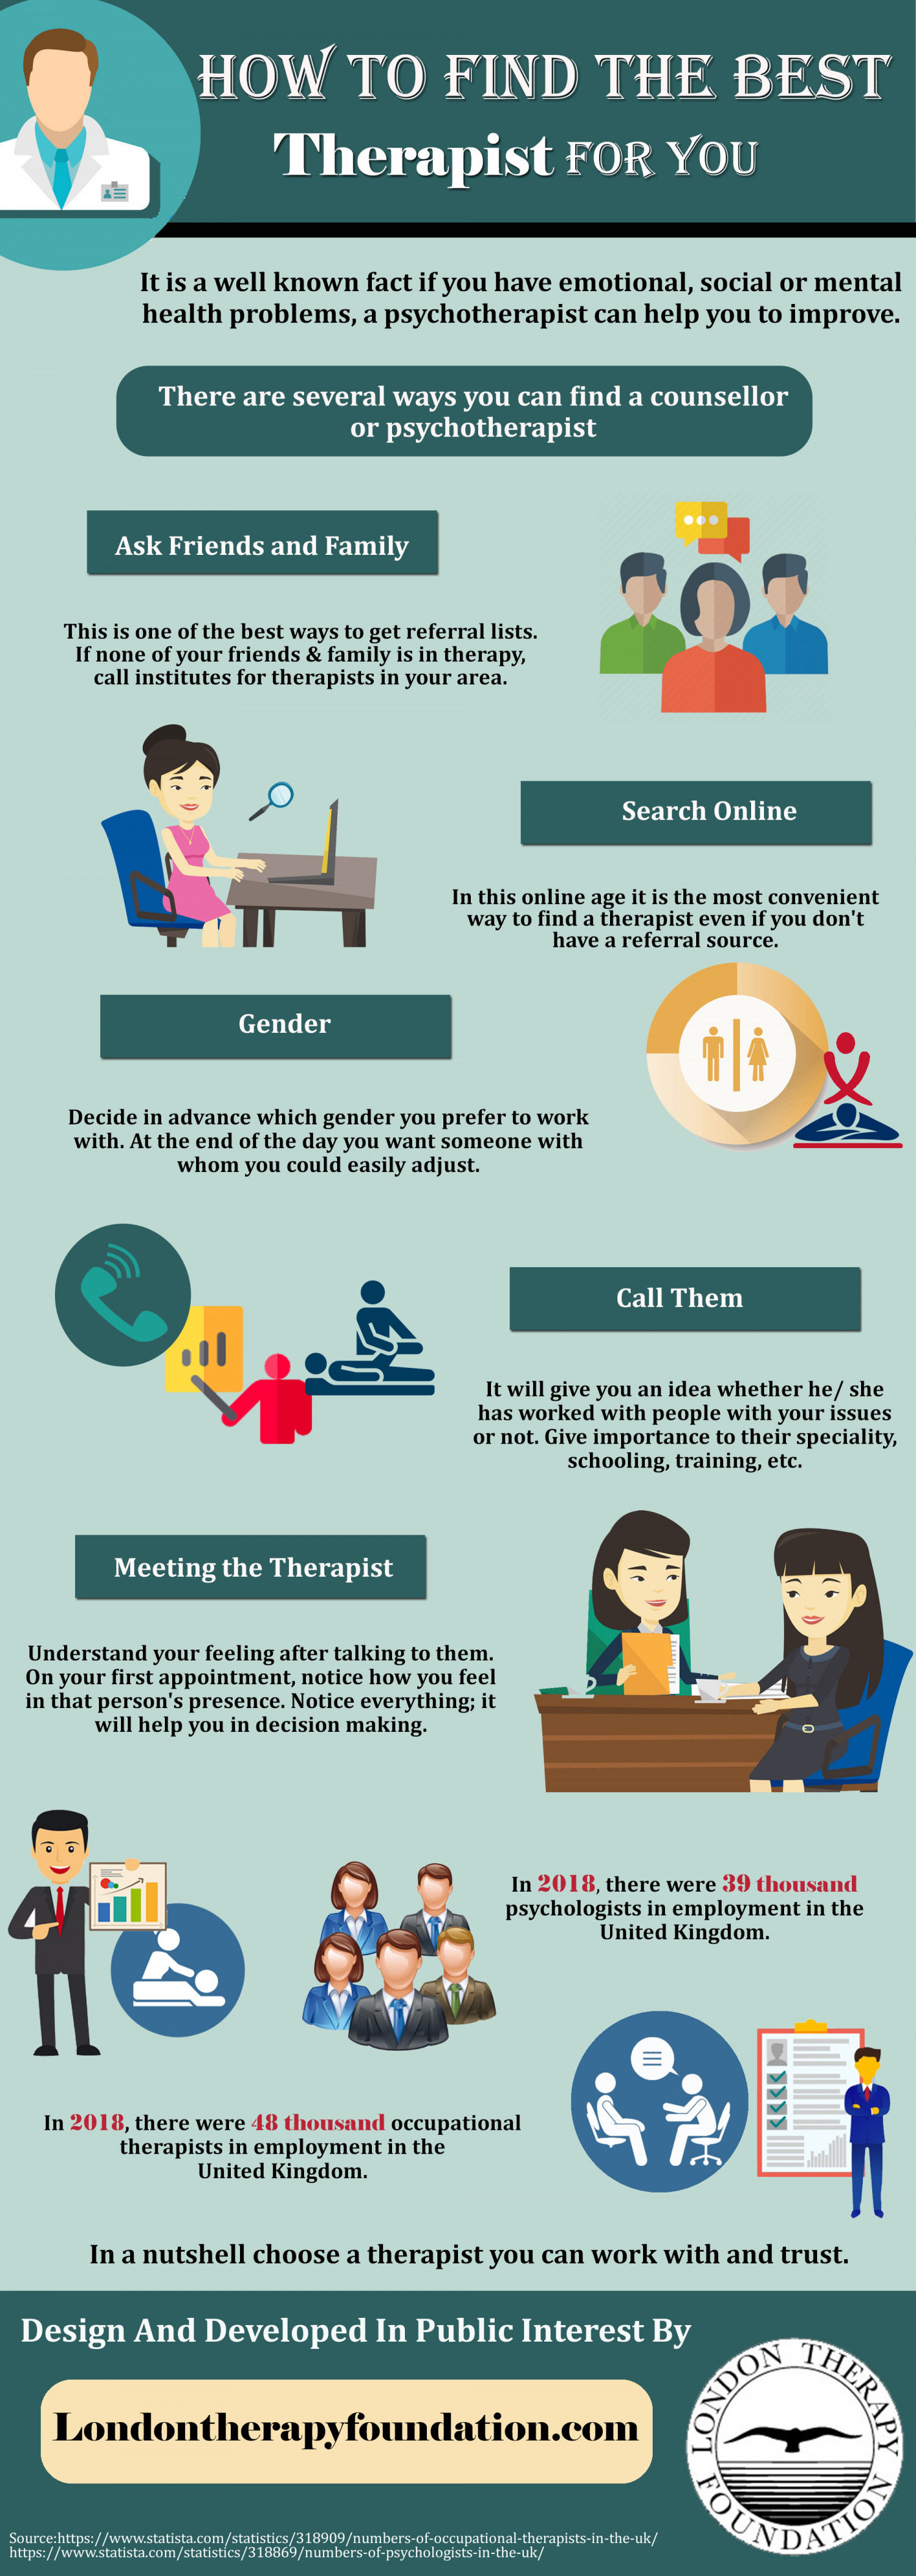 How to Find the Best Therapist for You Infographic